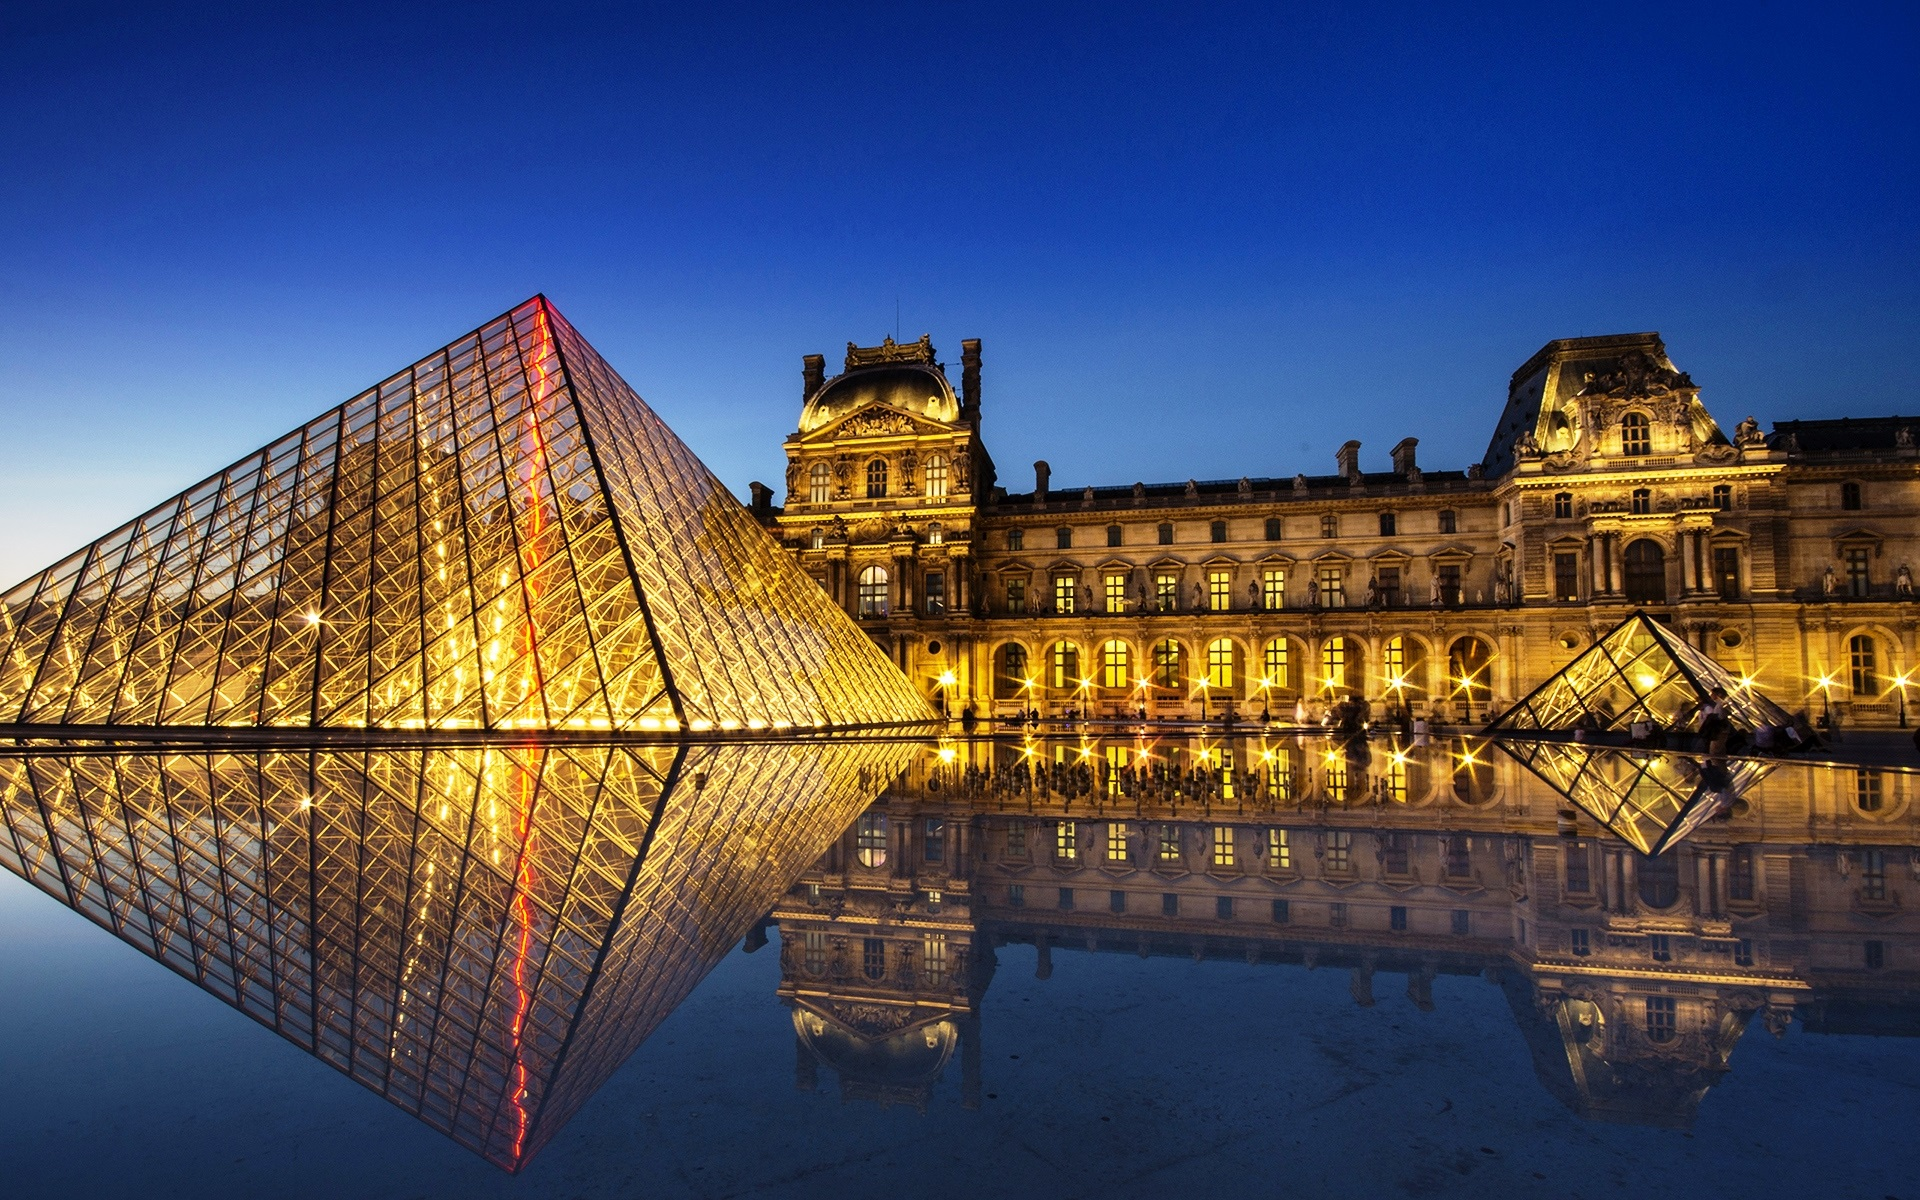 Best 51 The Louvre Wallpaper on HipWallpaper Louvre Wallpaper 1920x1200